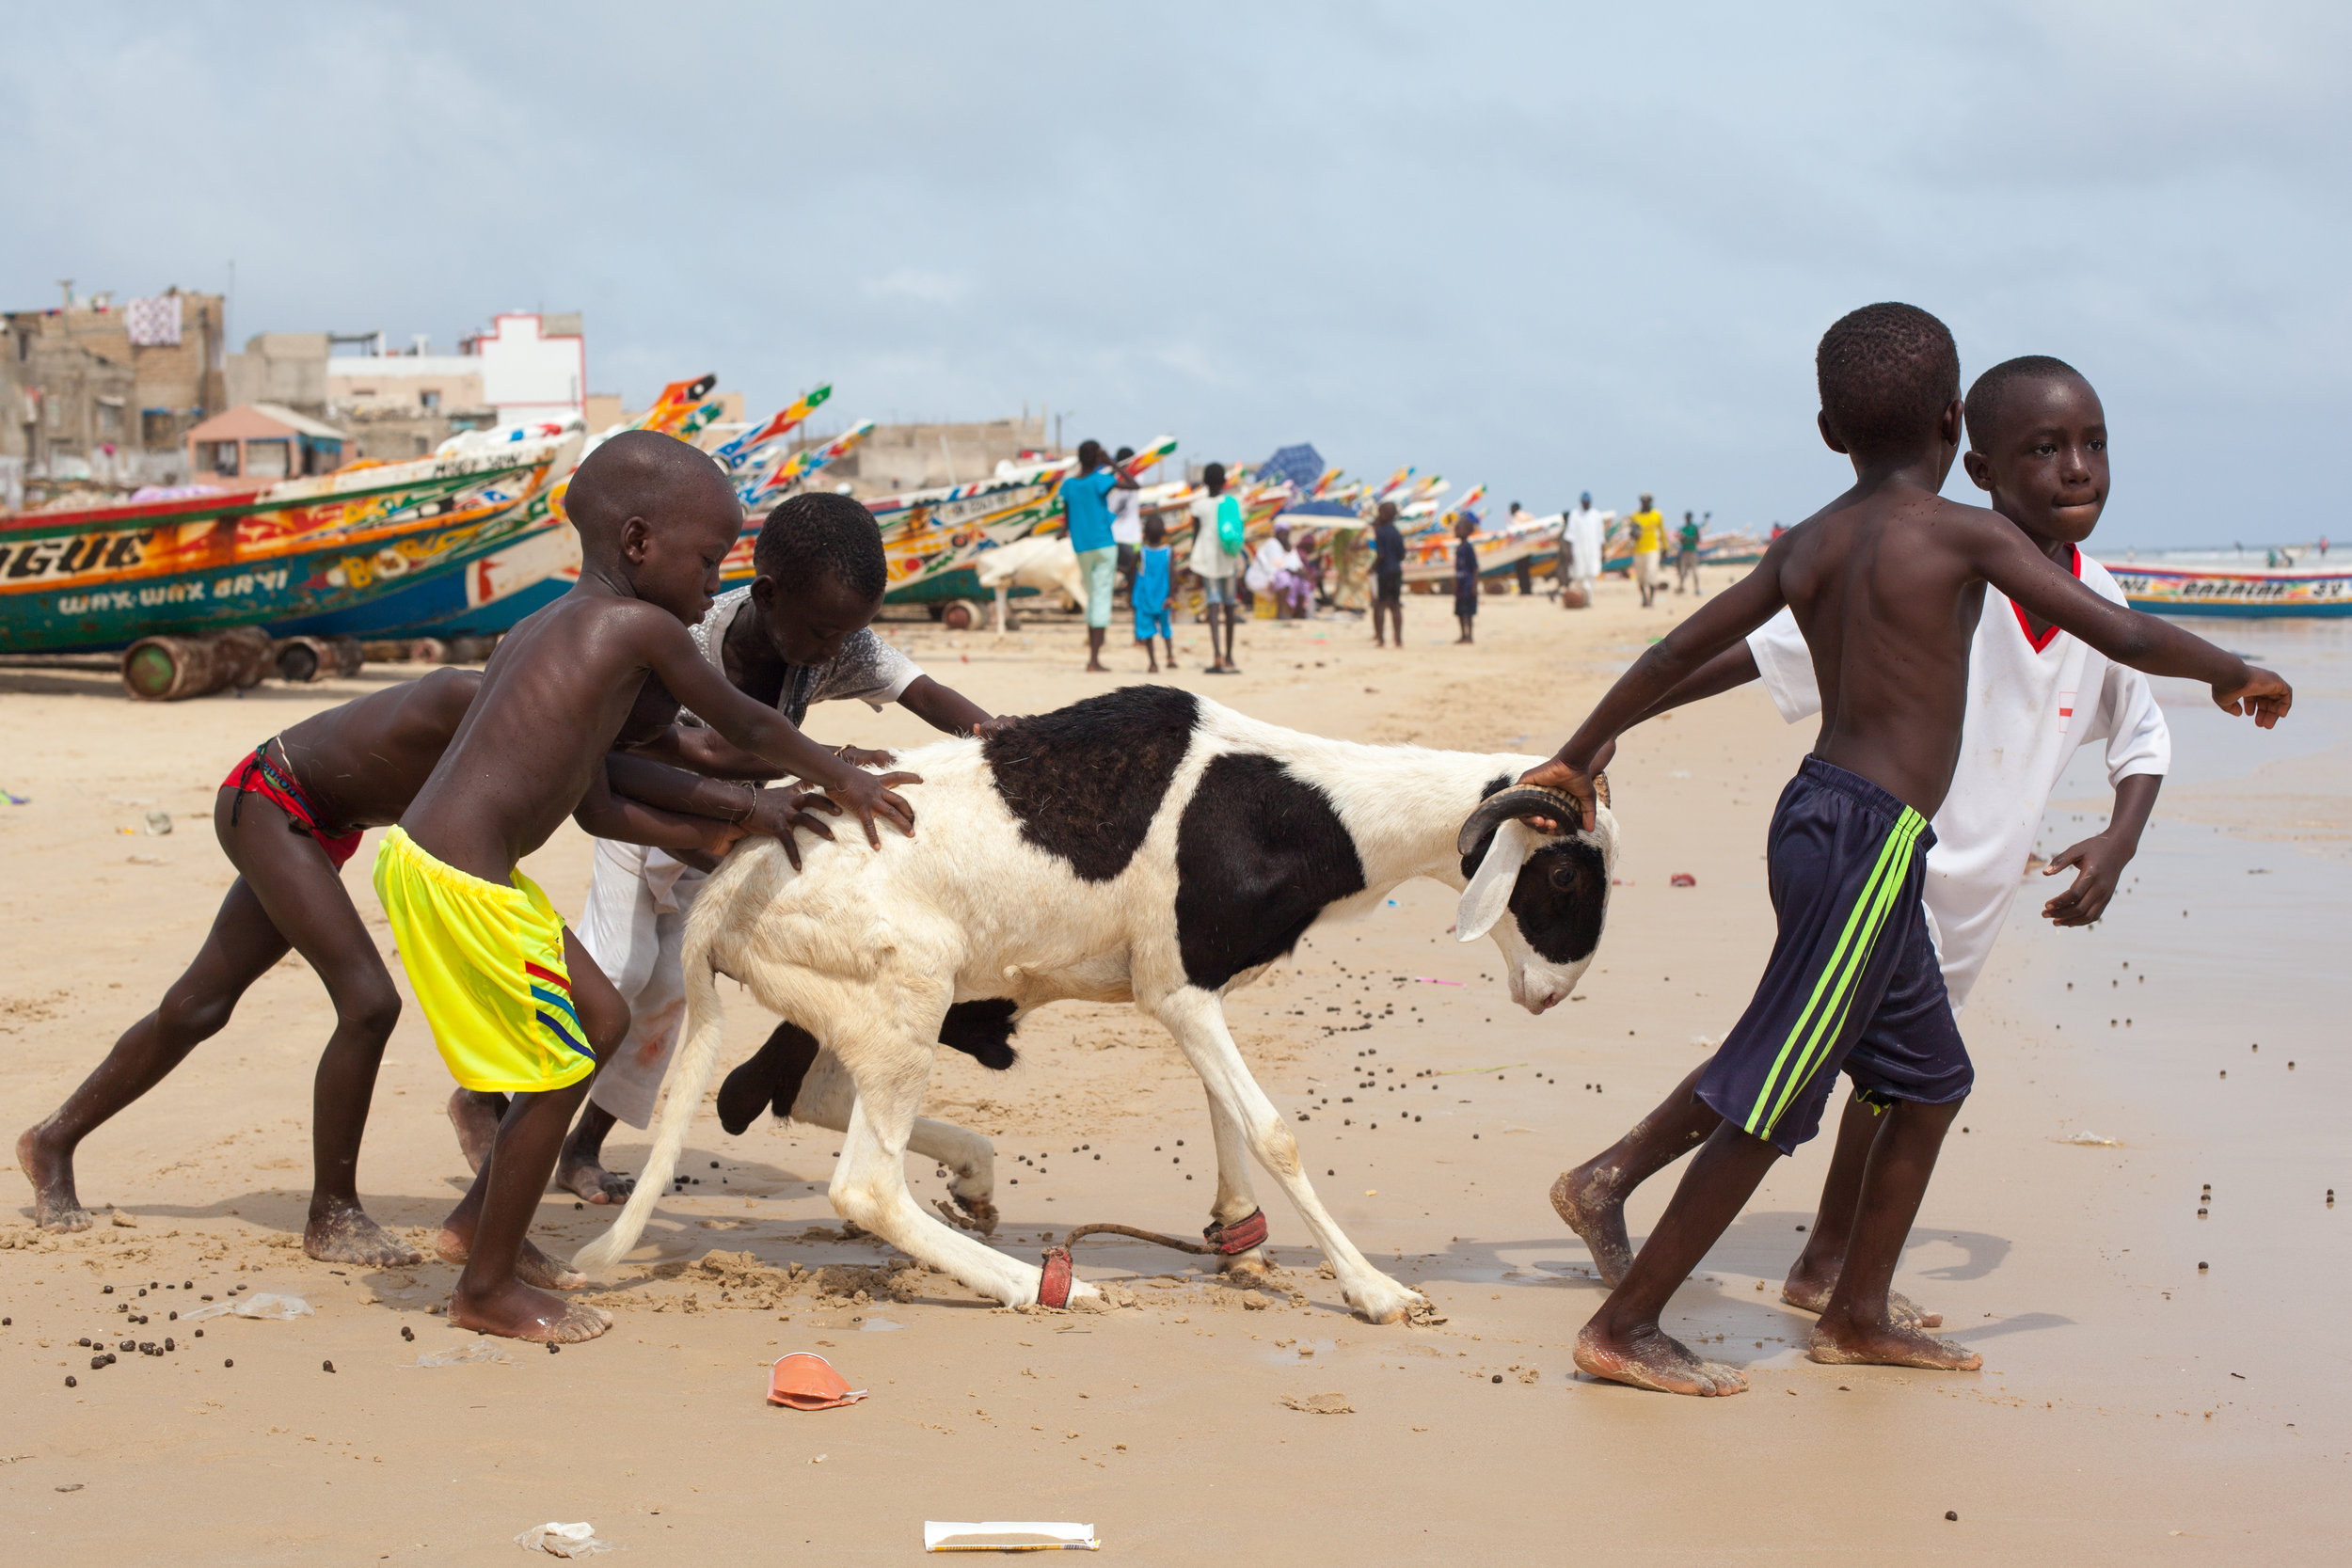 Ffotogallery Platform Instagram Takeover by Geraint Rowland - Children in Dakar lead a sheep to the ocean for a wash in preparation of the Tabaski Festival.